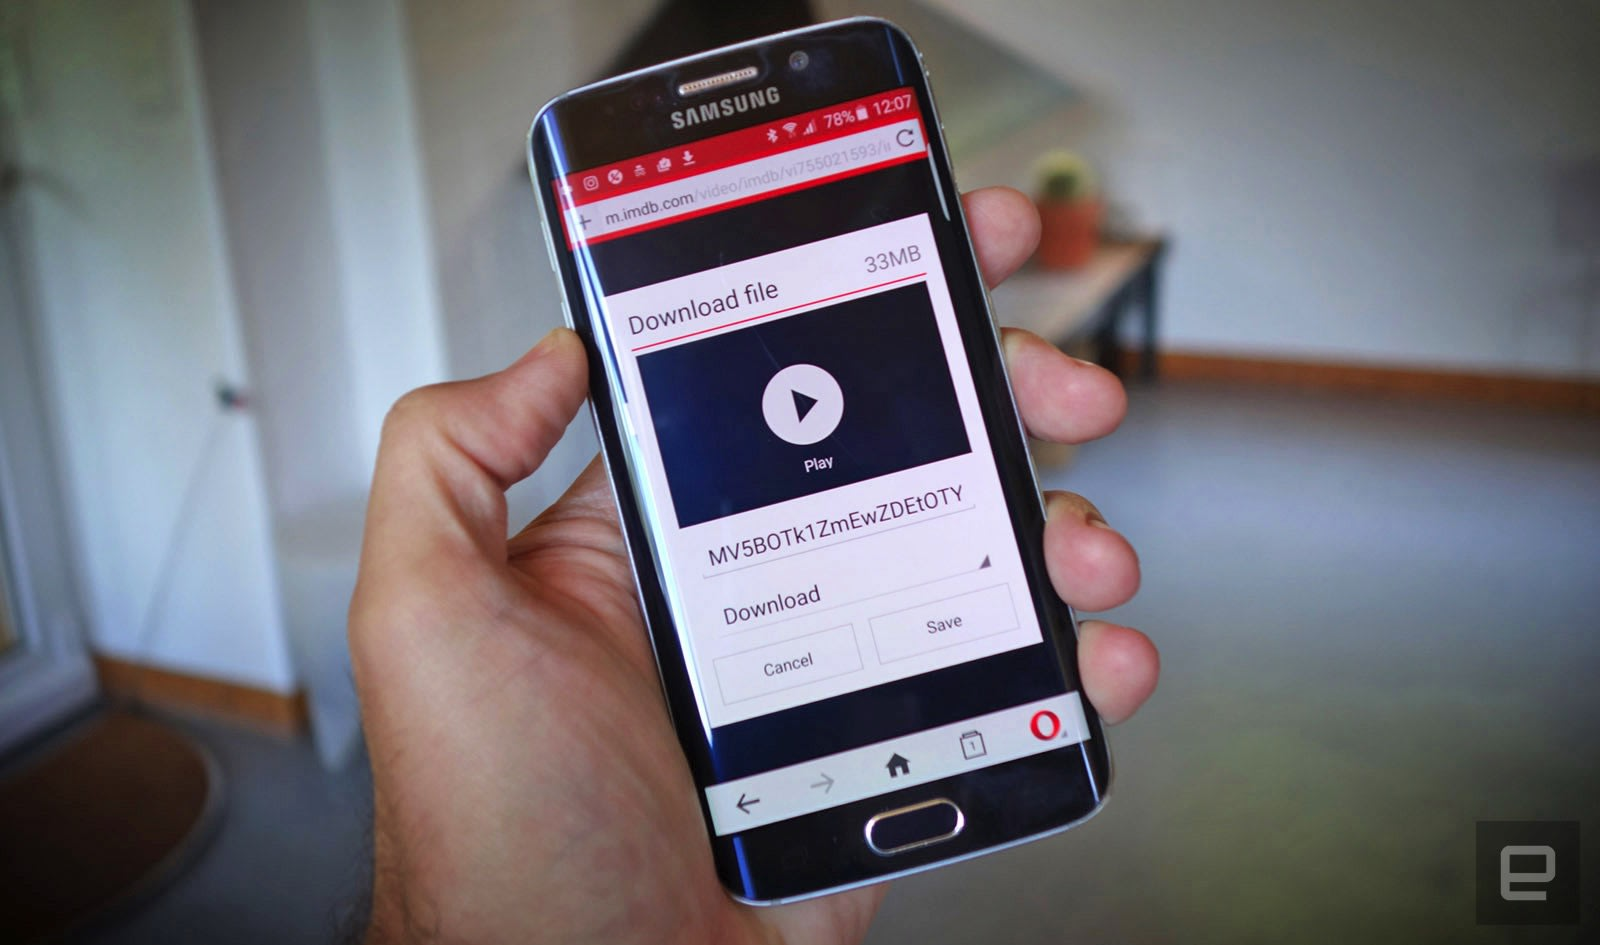 Opera mini can download videos for offline viewing image credit ccuart Choice Image